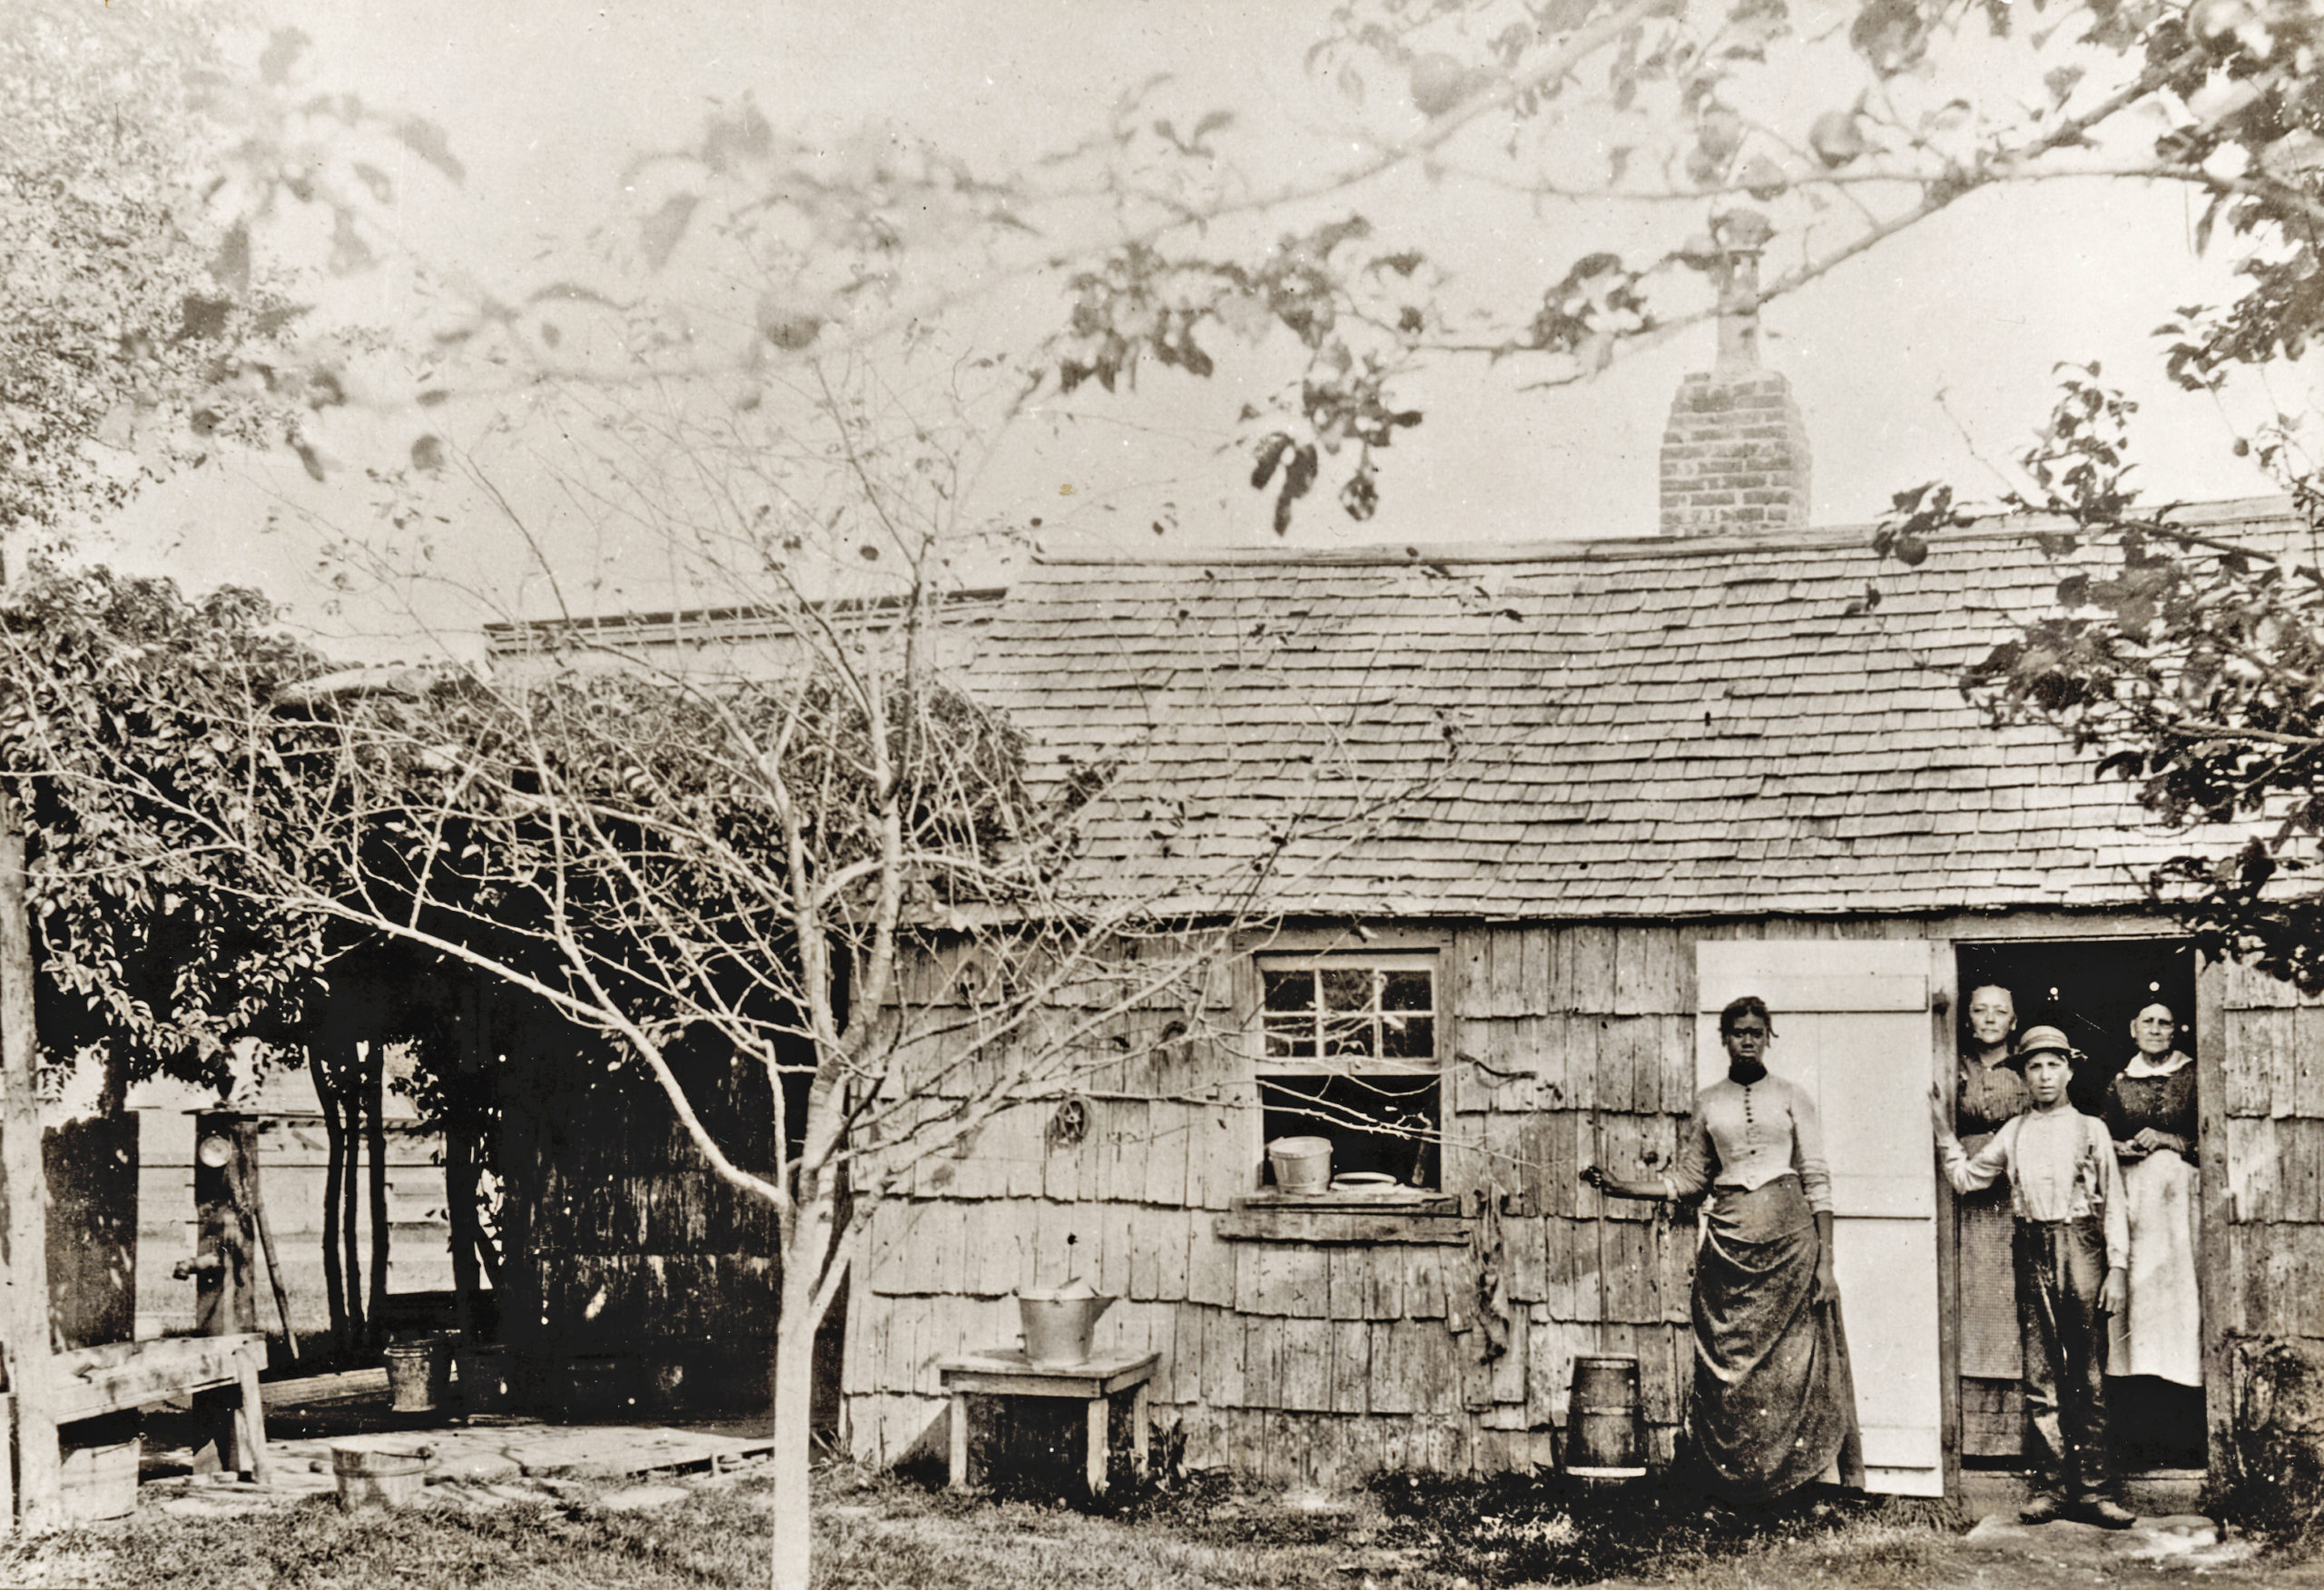 The Stratton Dayton house was in East Hampton, in the present-day Village of East Hampton. The date of this 19th century photograph and the names of the people in it are not known.   Courtesy Plain Sight Project